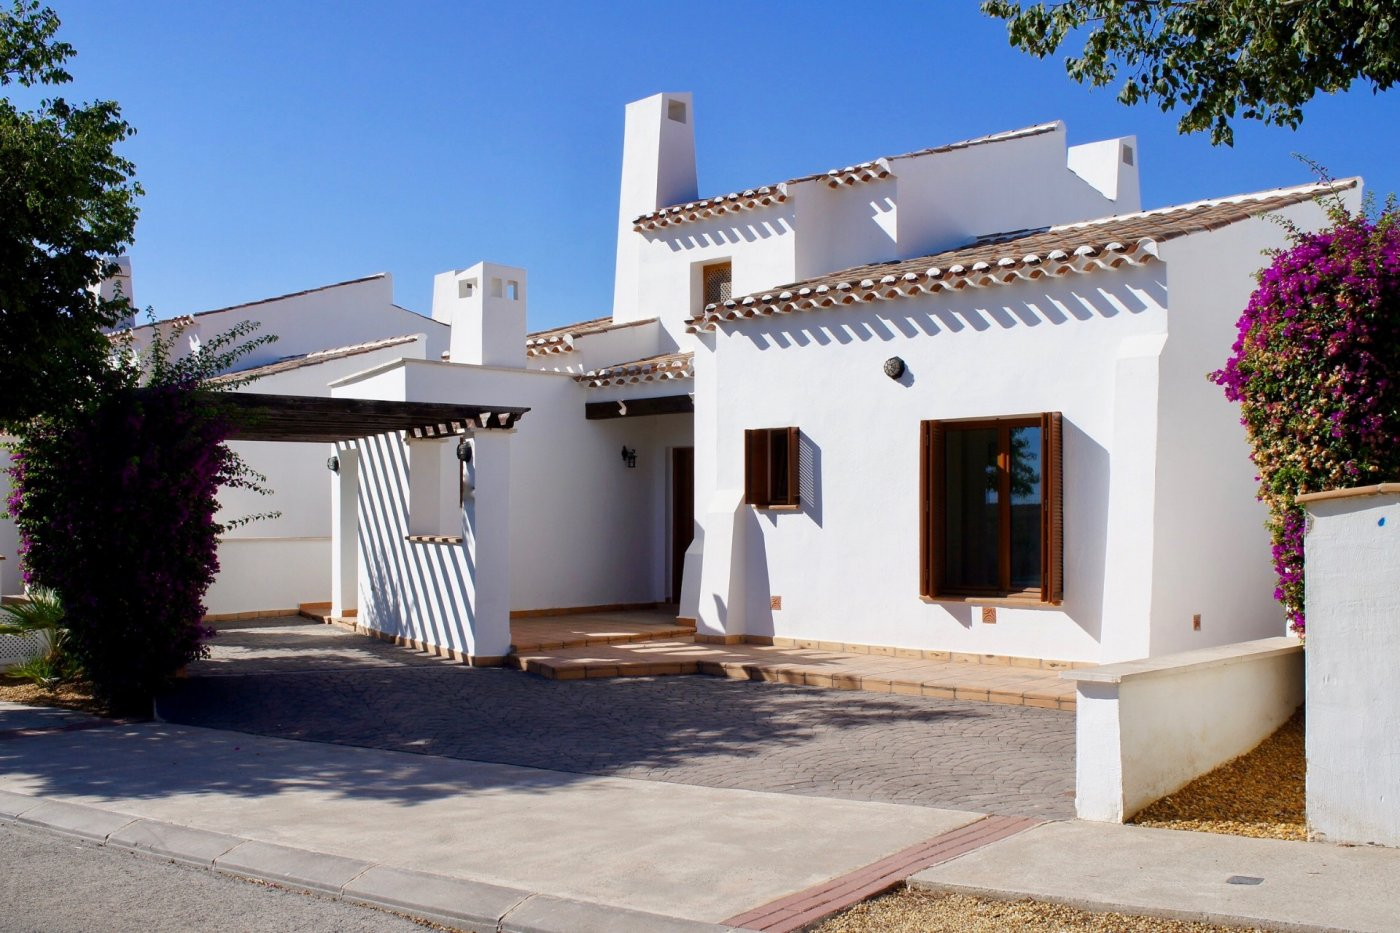 Gallery Image 2 of South West Facing 3 Bed Villa with Private Pool on El Valle Golf resort